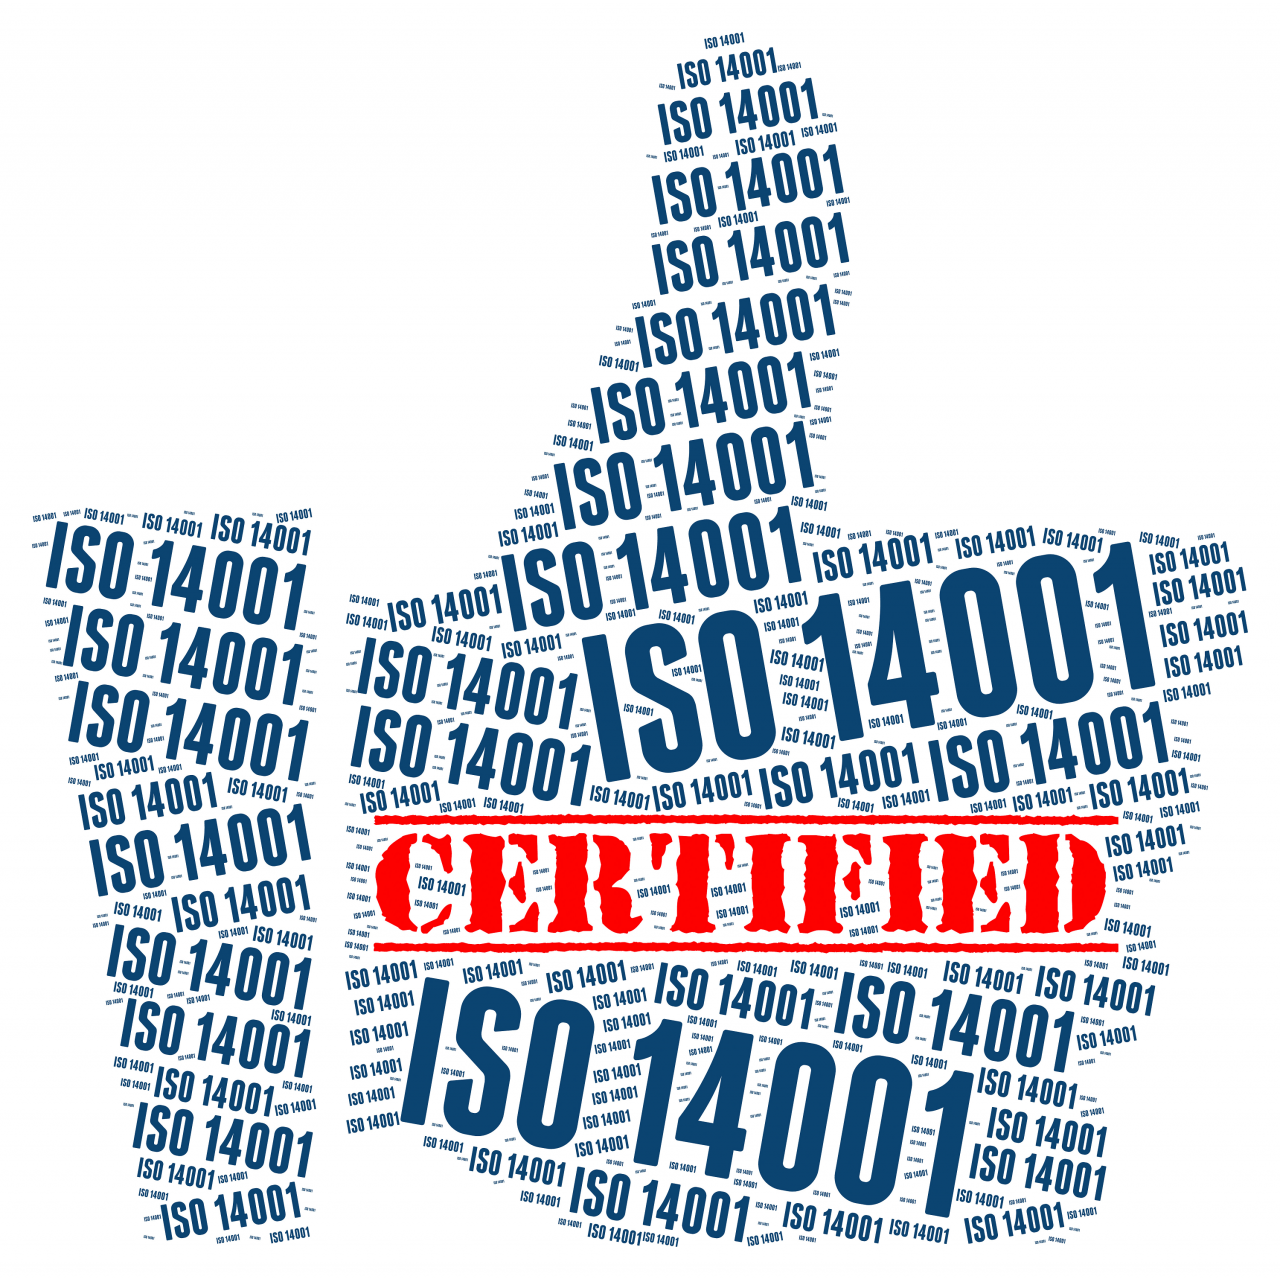 Milieumanagement Iso 14001